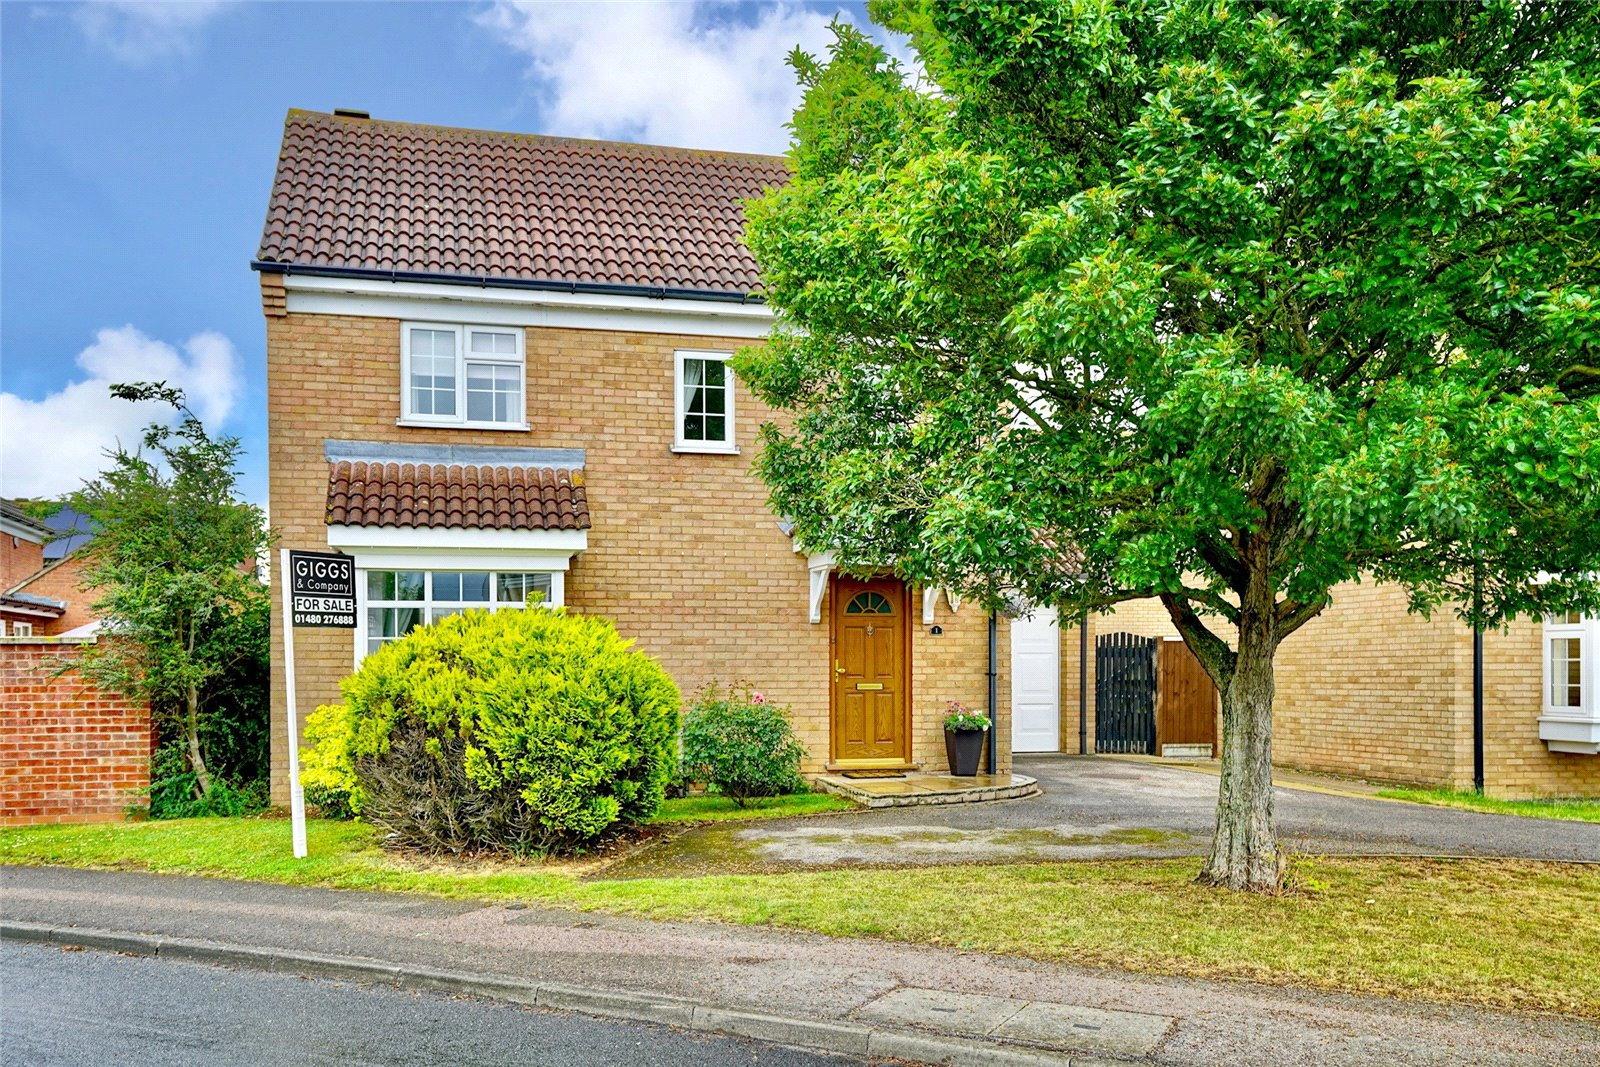 3 bed house for sale in Axis Way, Eaton Socon - Property Image 1